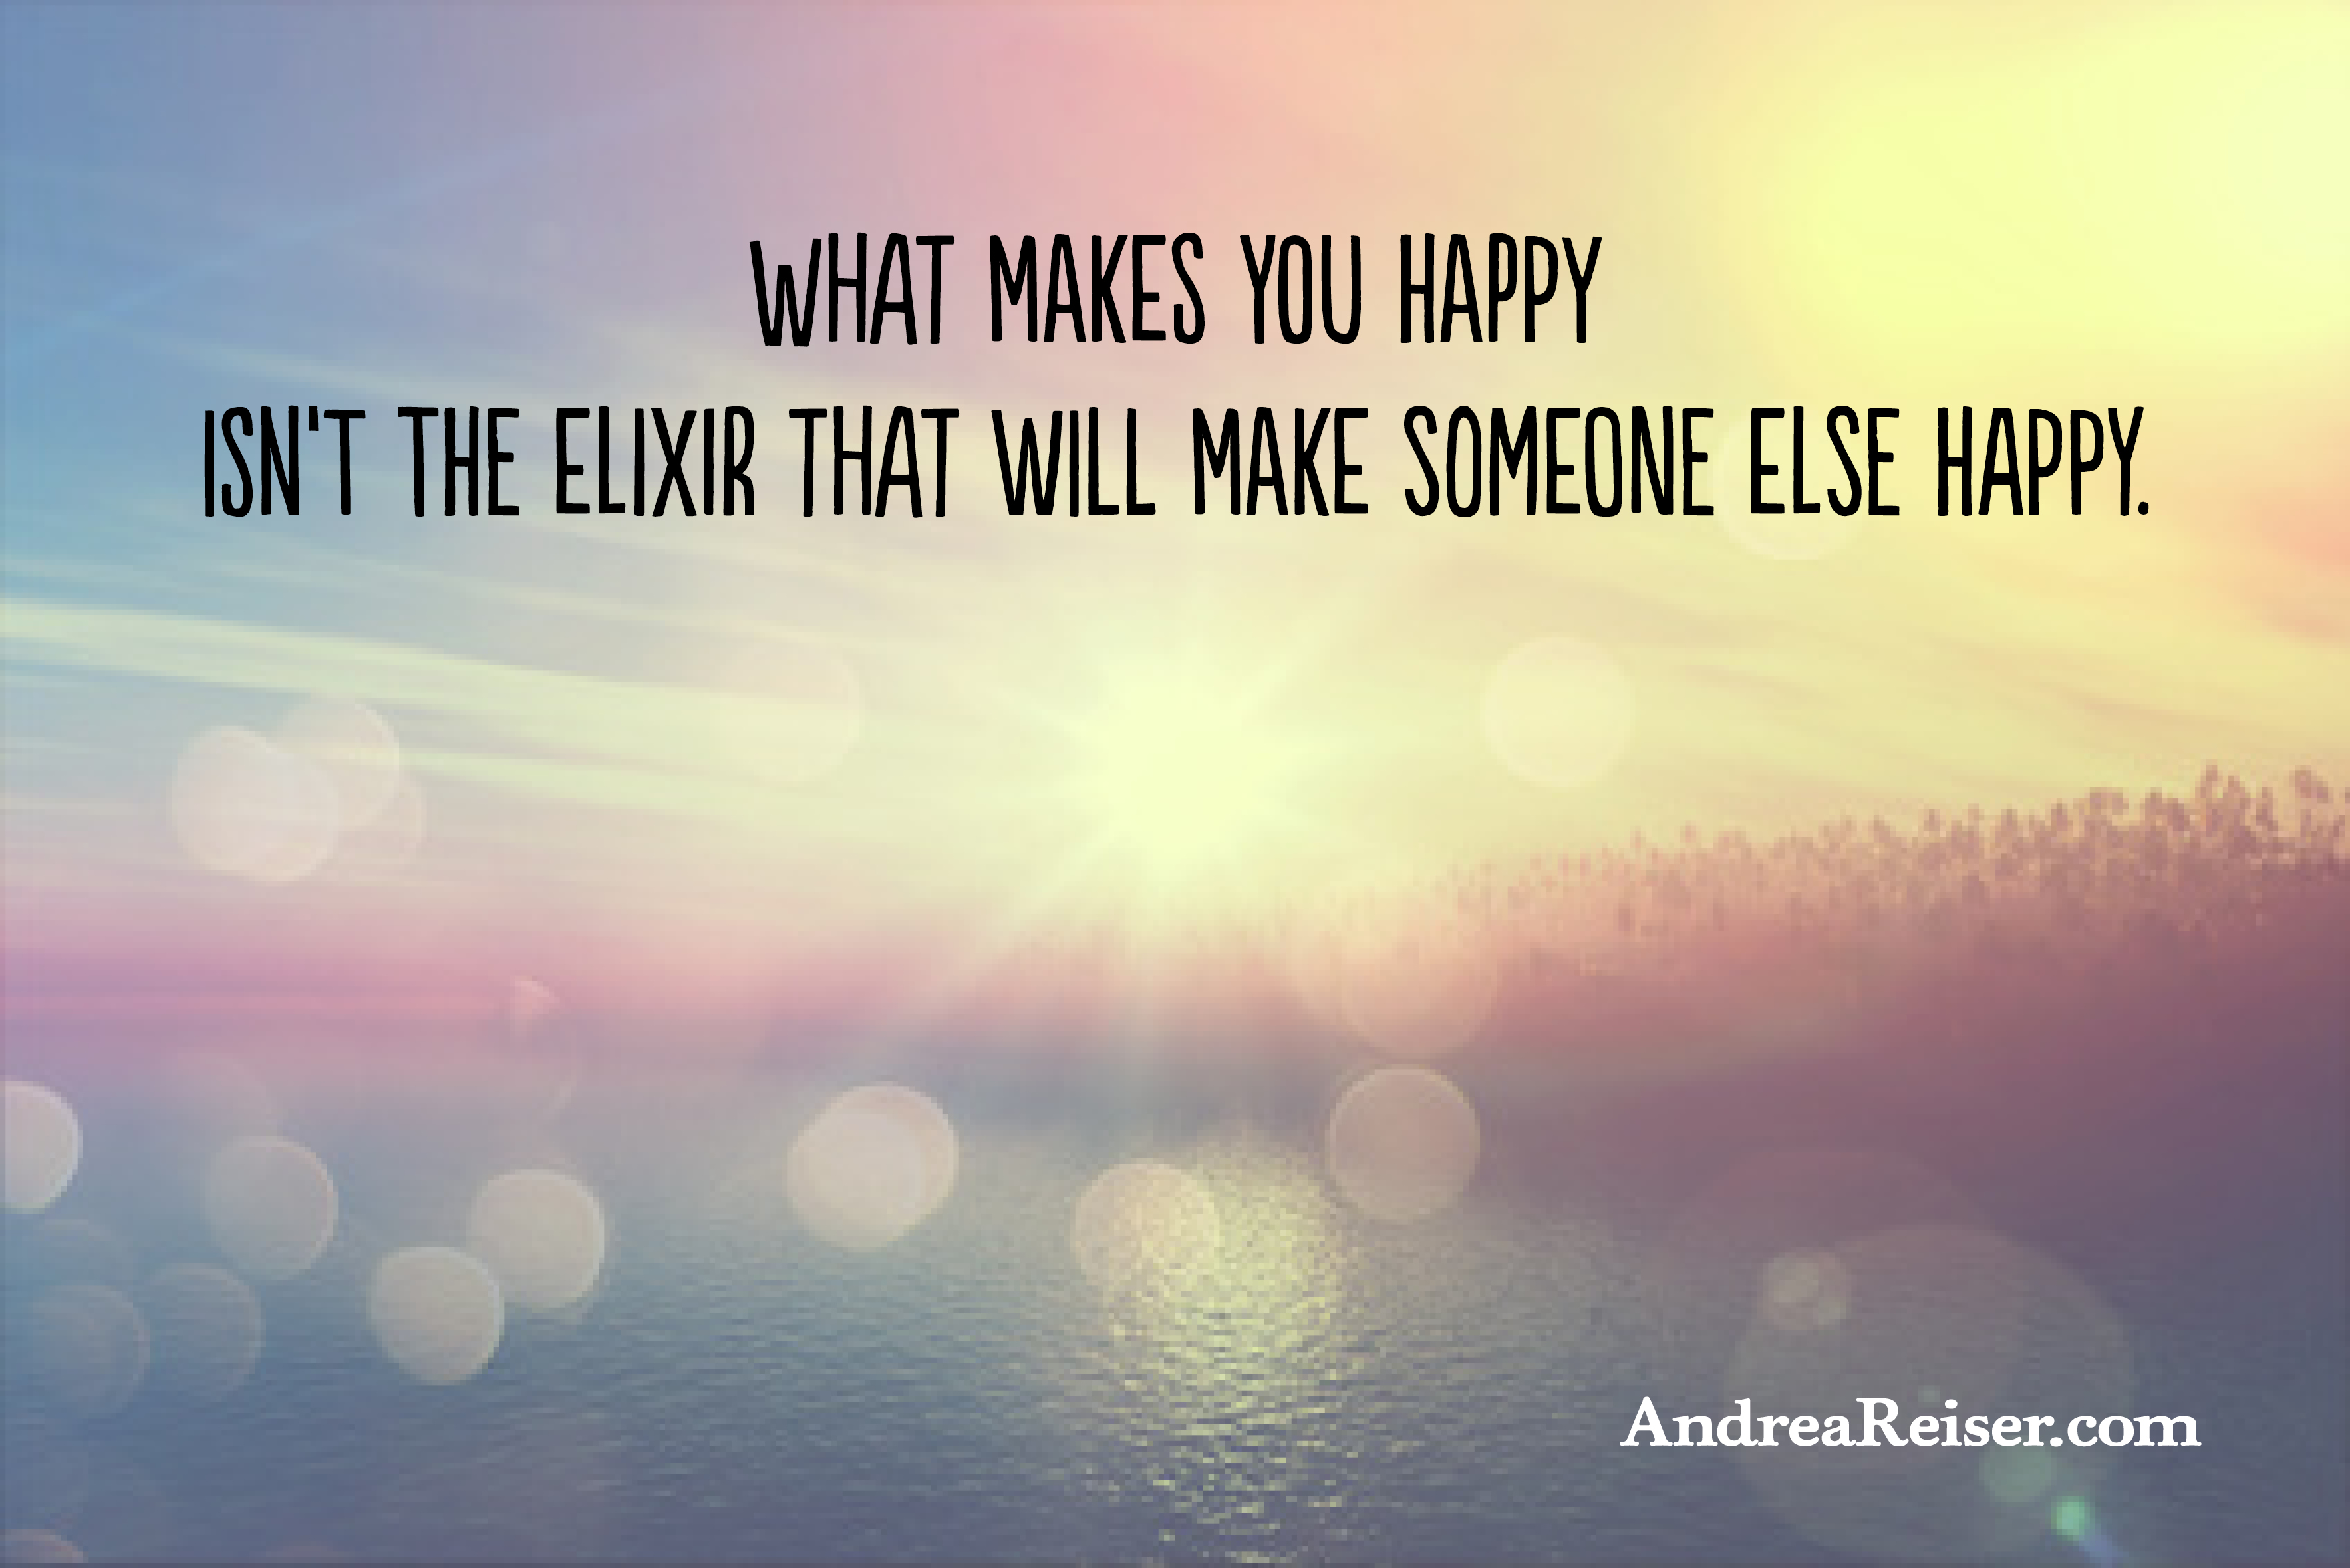 What Makes You Happy Isn't the Elixir That Will Make ...